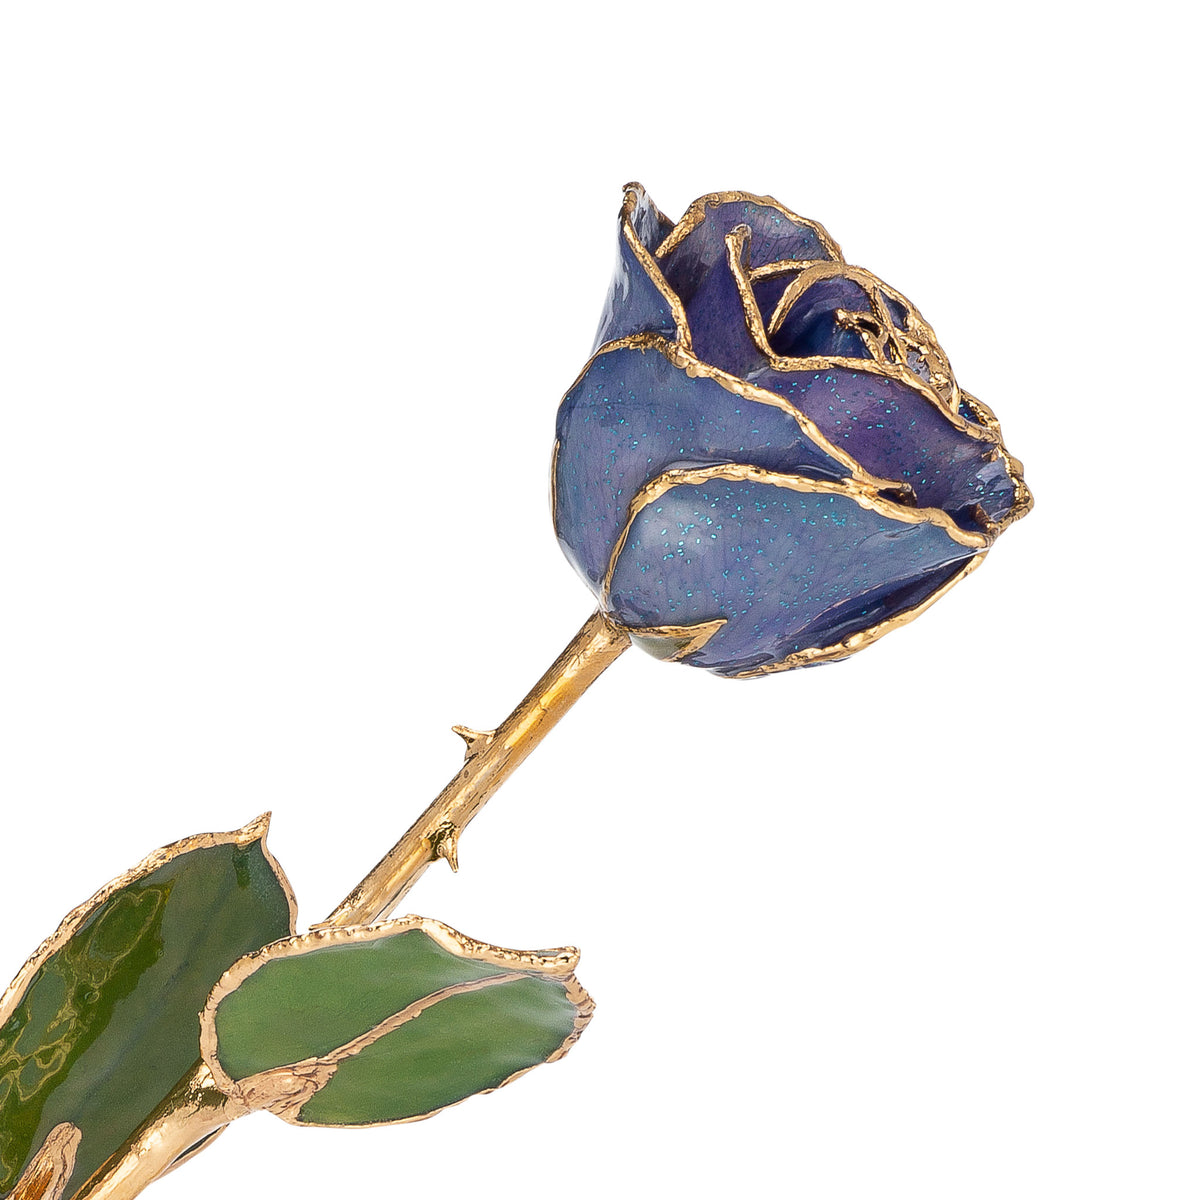 24K Gold Trimmed Forever Rose with Tanzanite (Purple, Lavender, and Blue color blend) Petals with Sapphire Blue Suspended Sparkles. View of Stem, Leaves, and Rose Petals and Showing Detail of Gold Trim